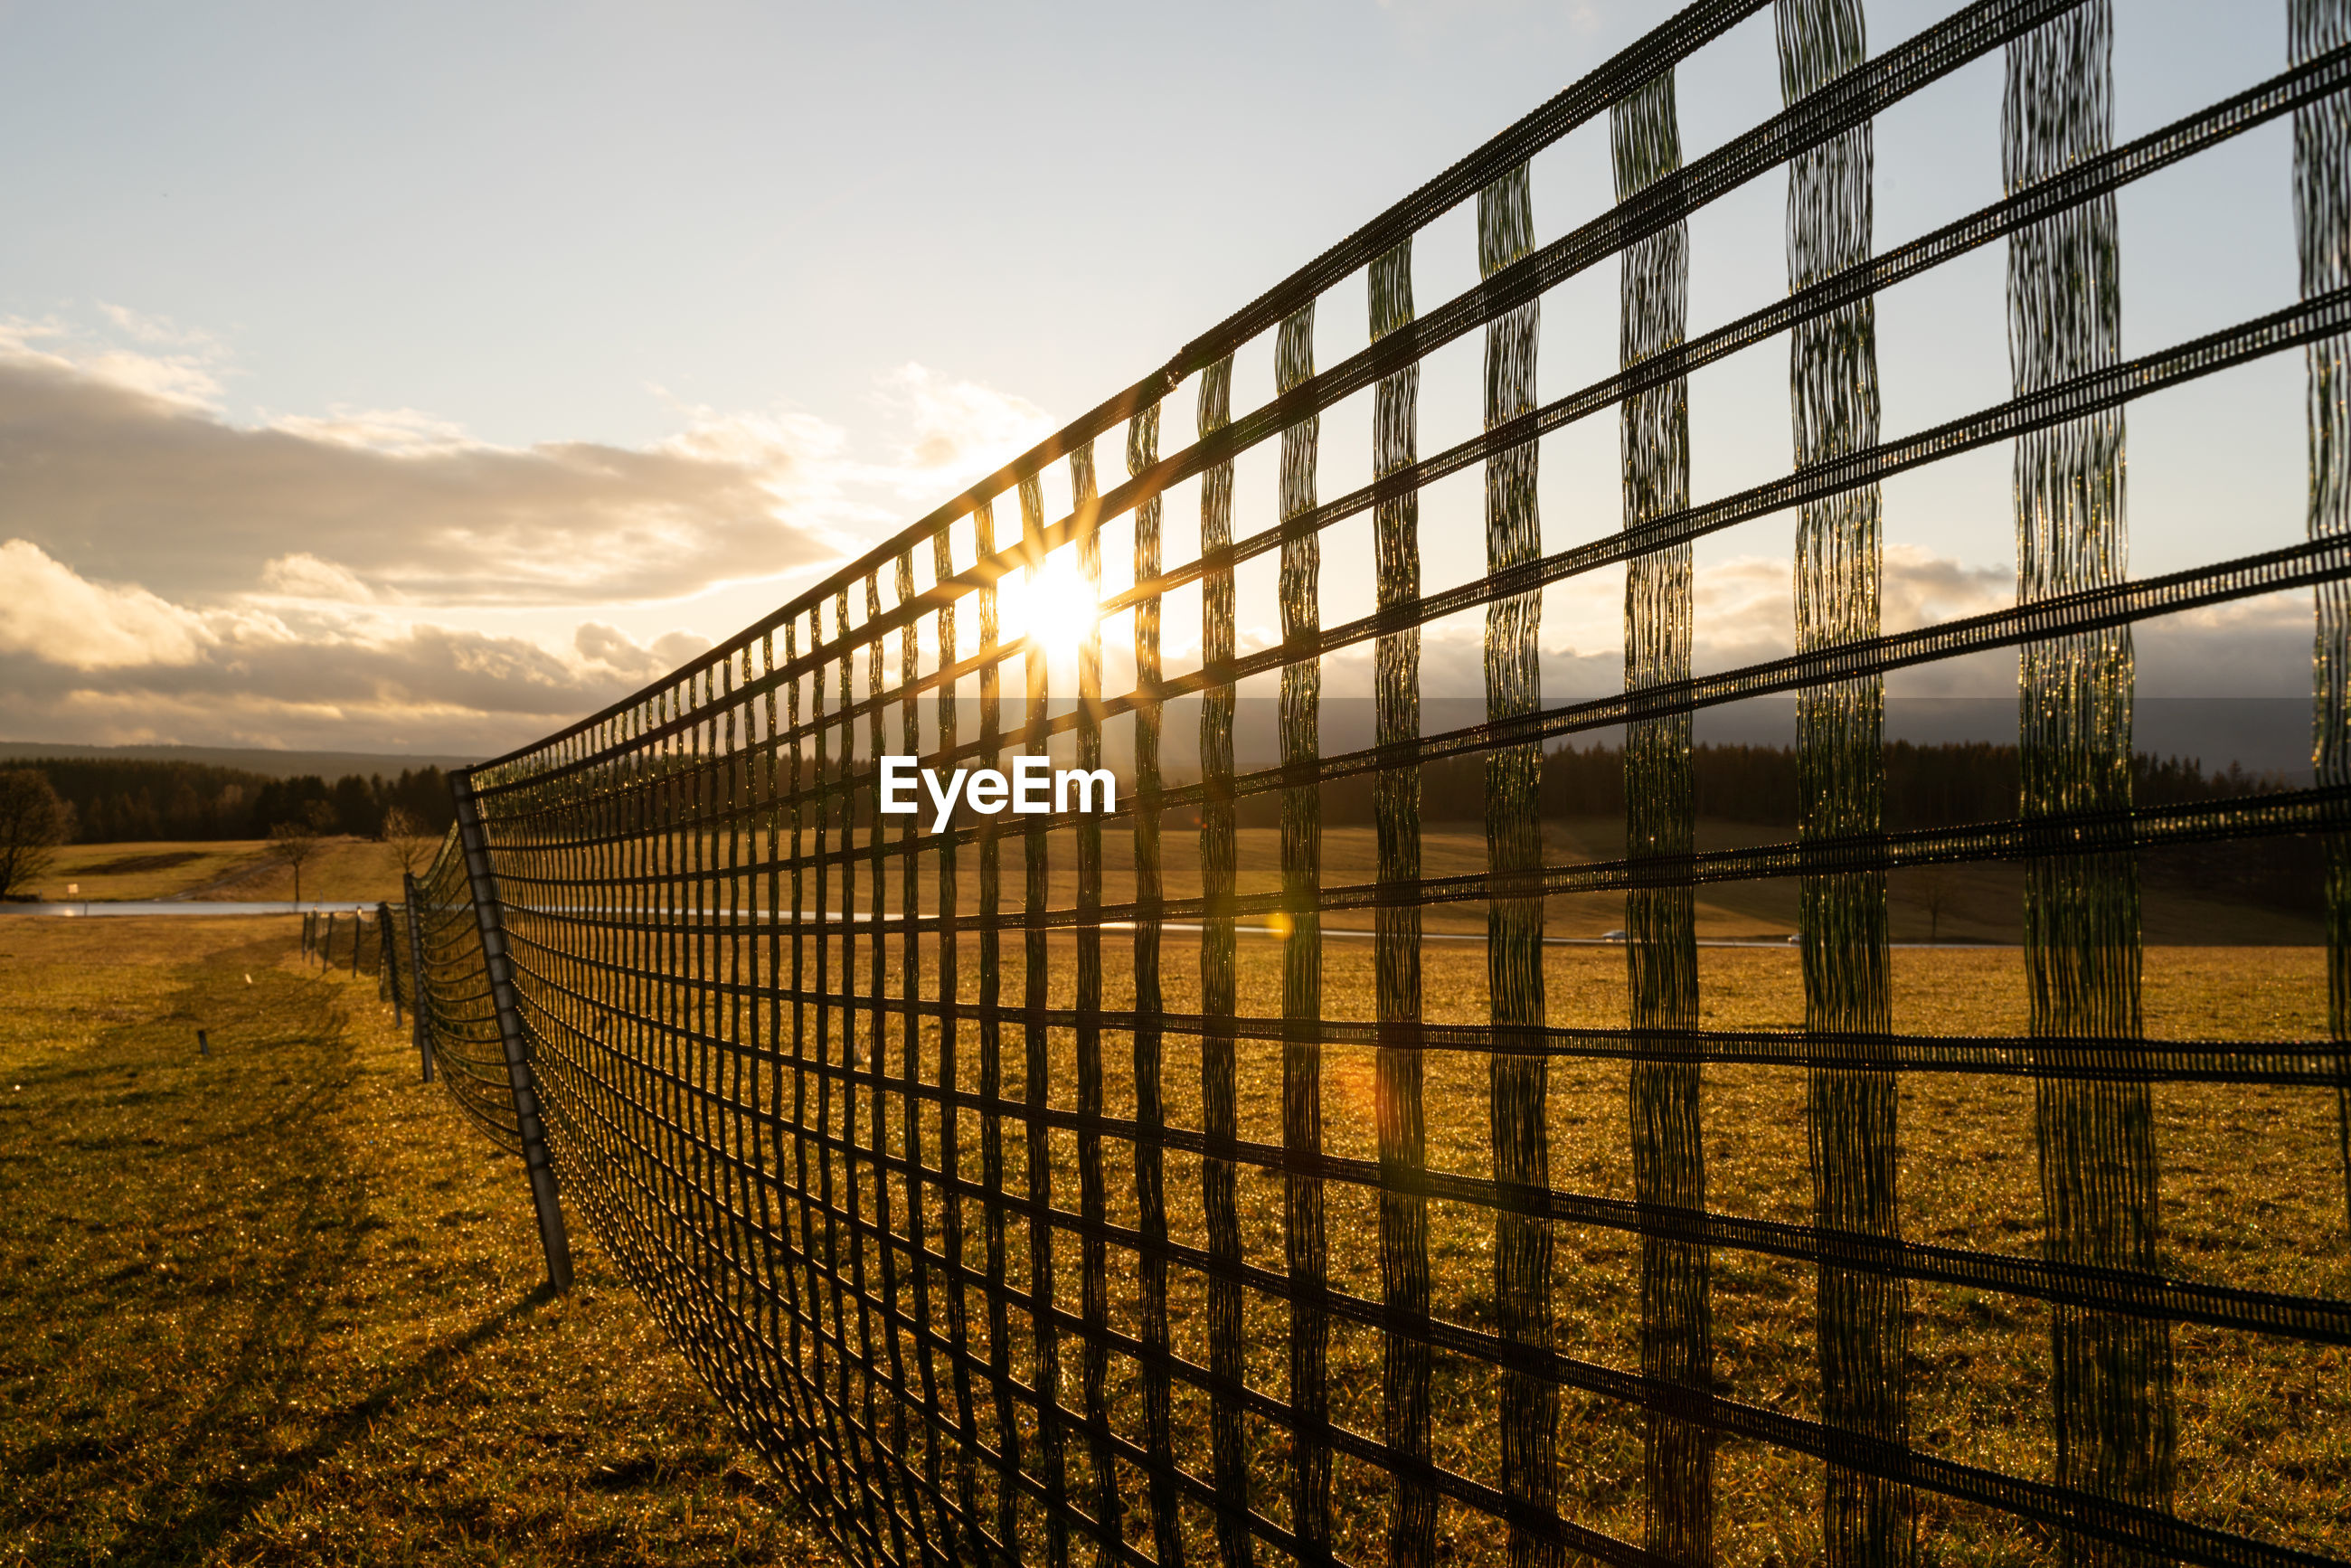 Fence against sky during sunset